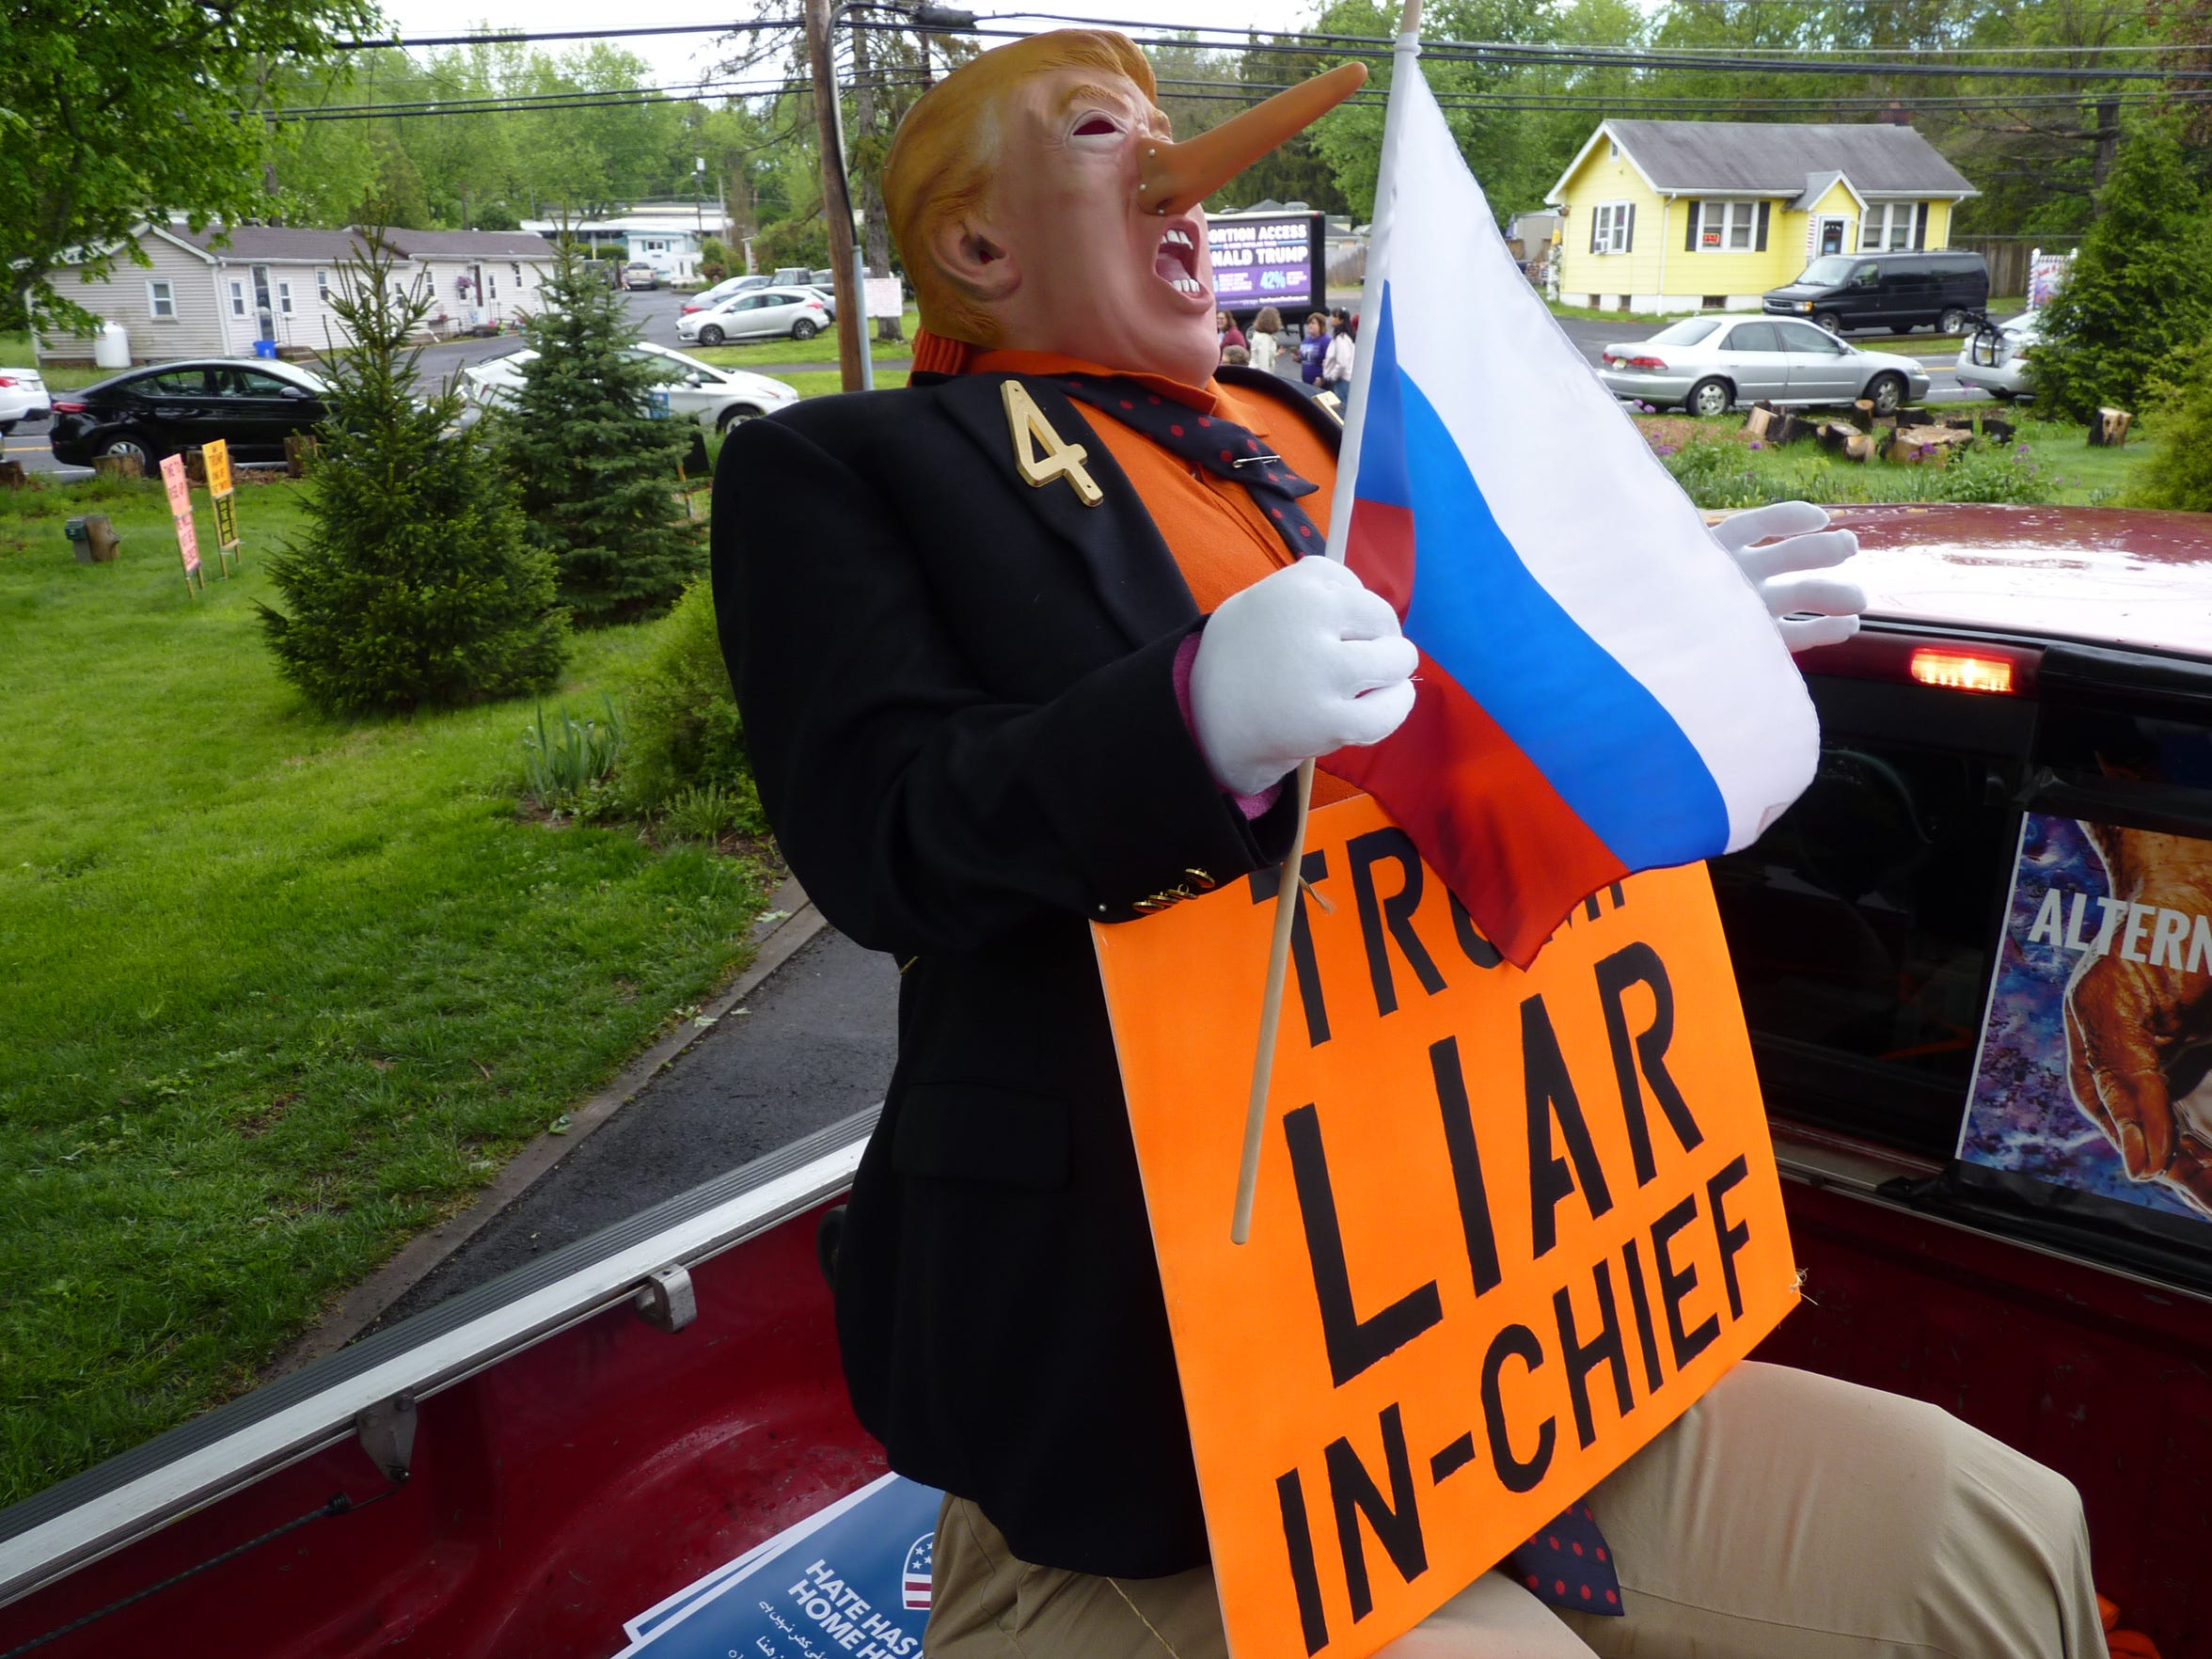 An anti-Donald Trump effigy in the back of the pickup that led the motorcade to Trump National Golf Club in Bedminster last month.